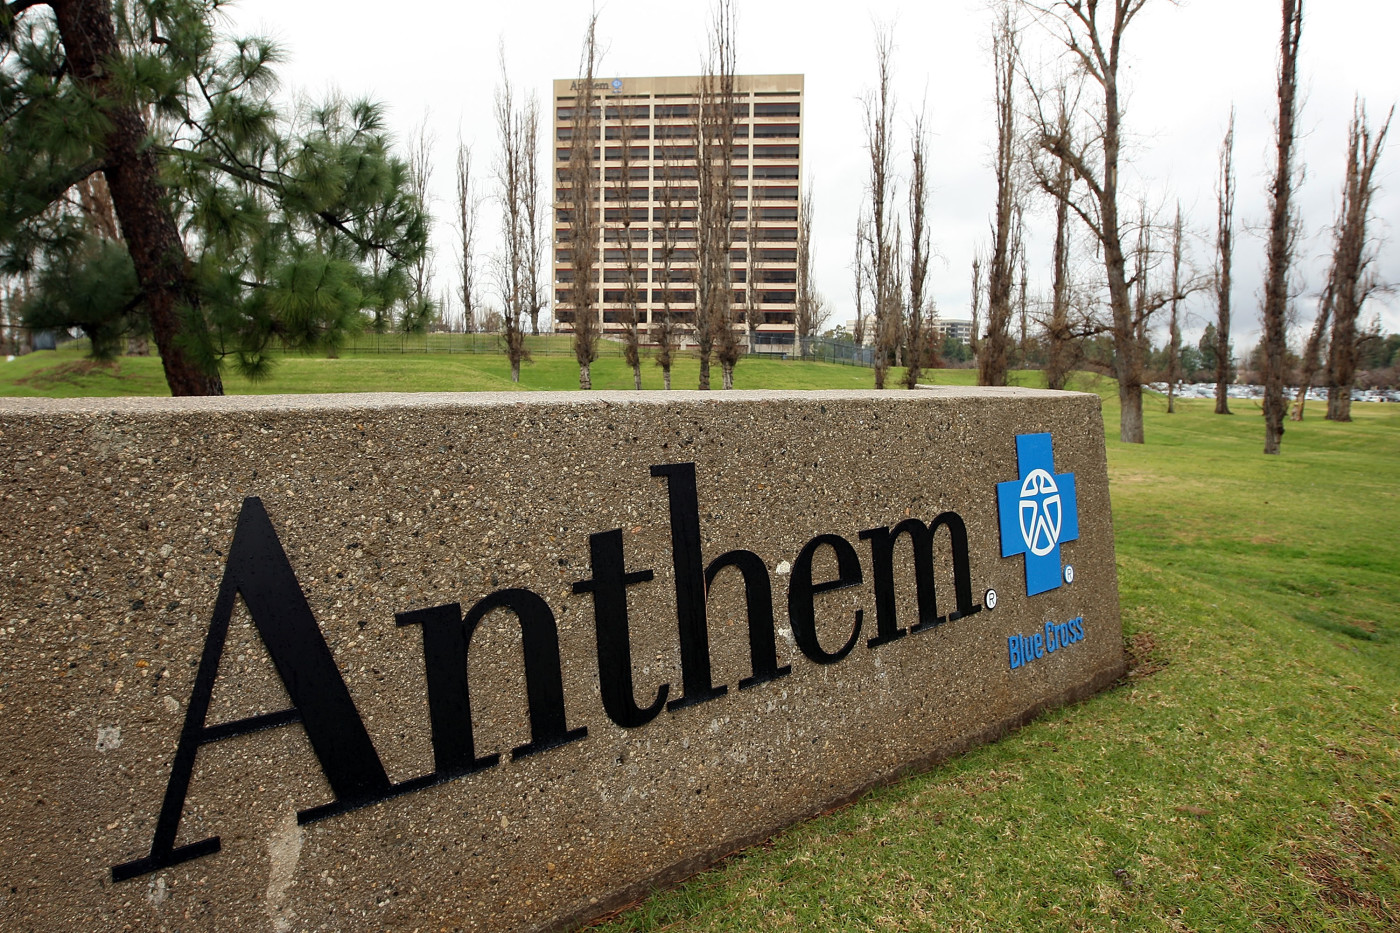 The Anthem Blue Cross headquarters in Woodland Hills, CA. Anthem is California's largest for-profit insurer.